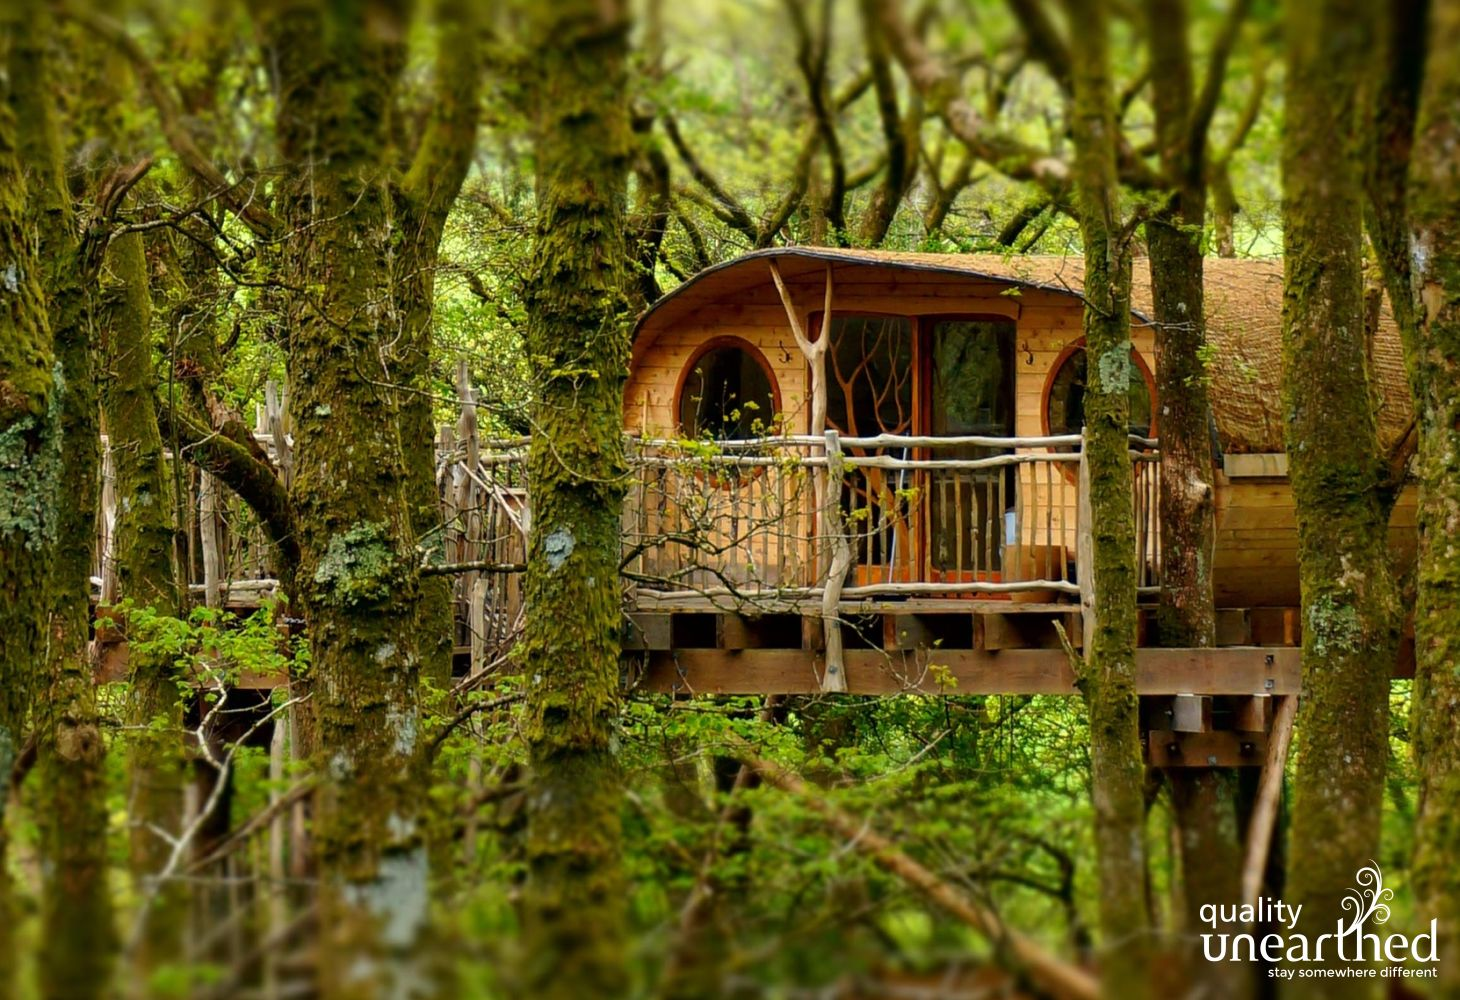 A lush forest with moss covered ancient trees and lichen surround a treehouse which sits on stilts making a perfect off grid treehouse holiday